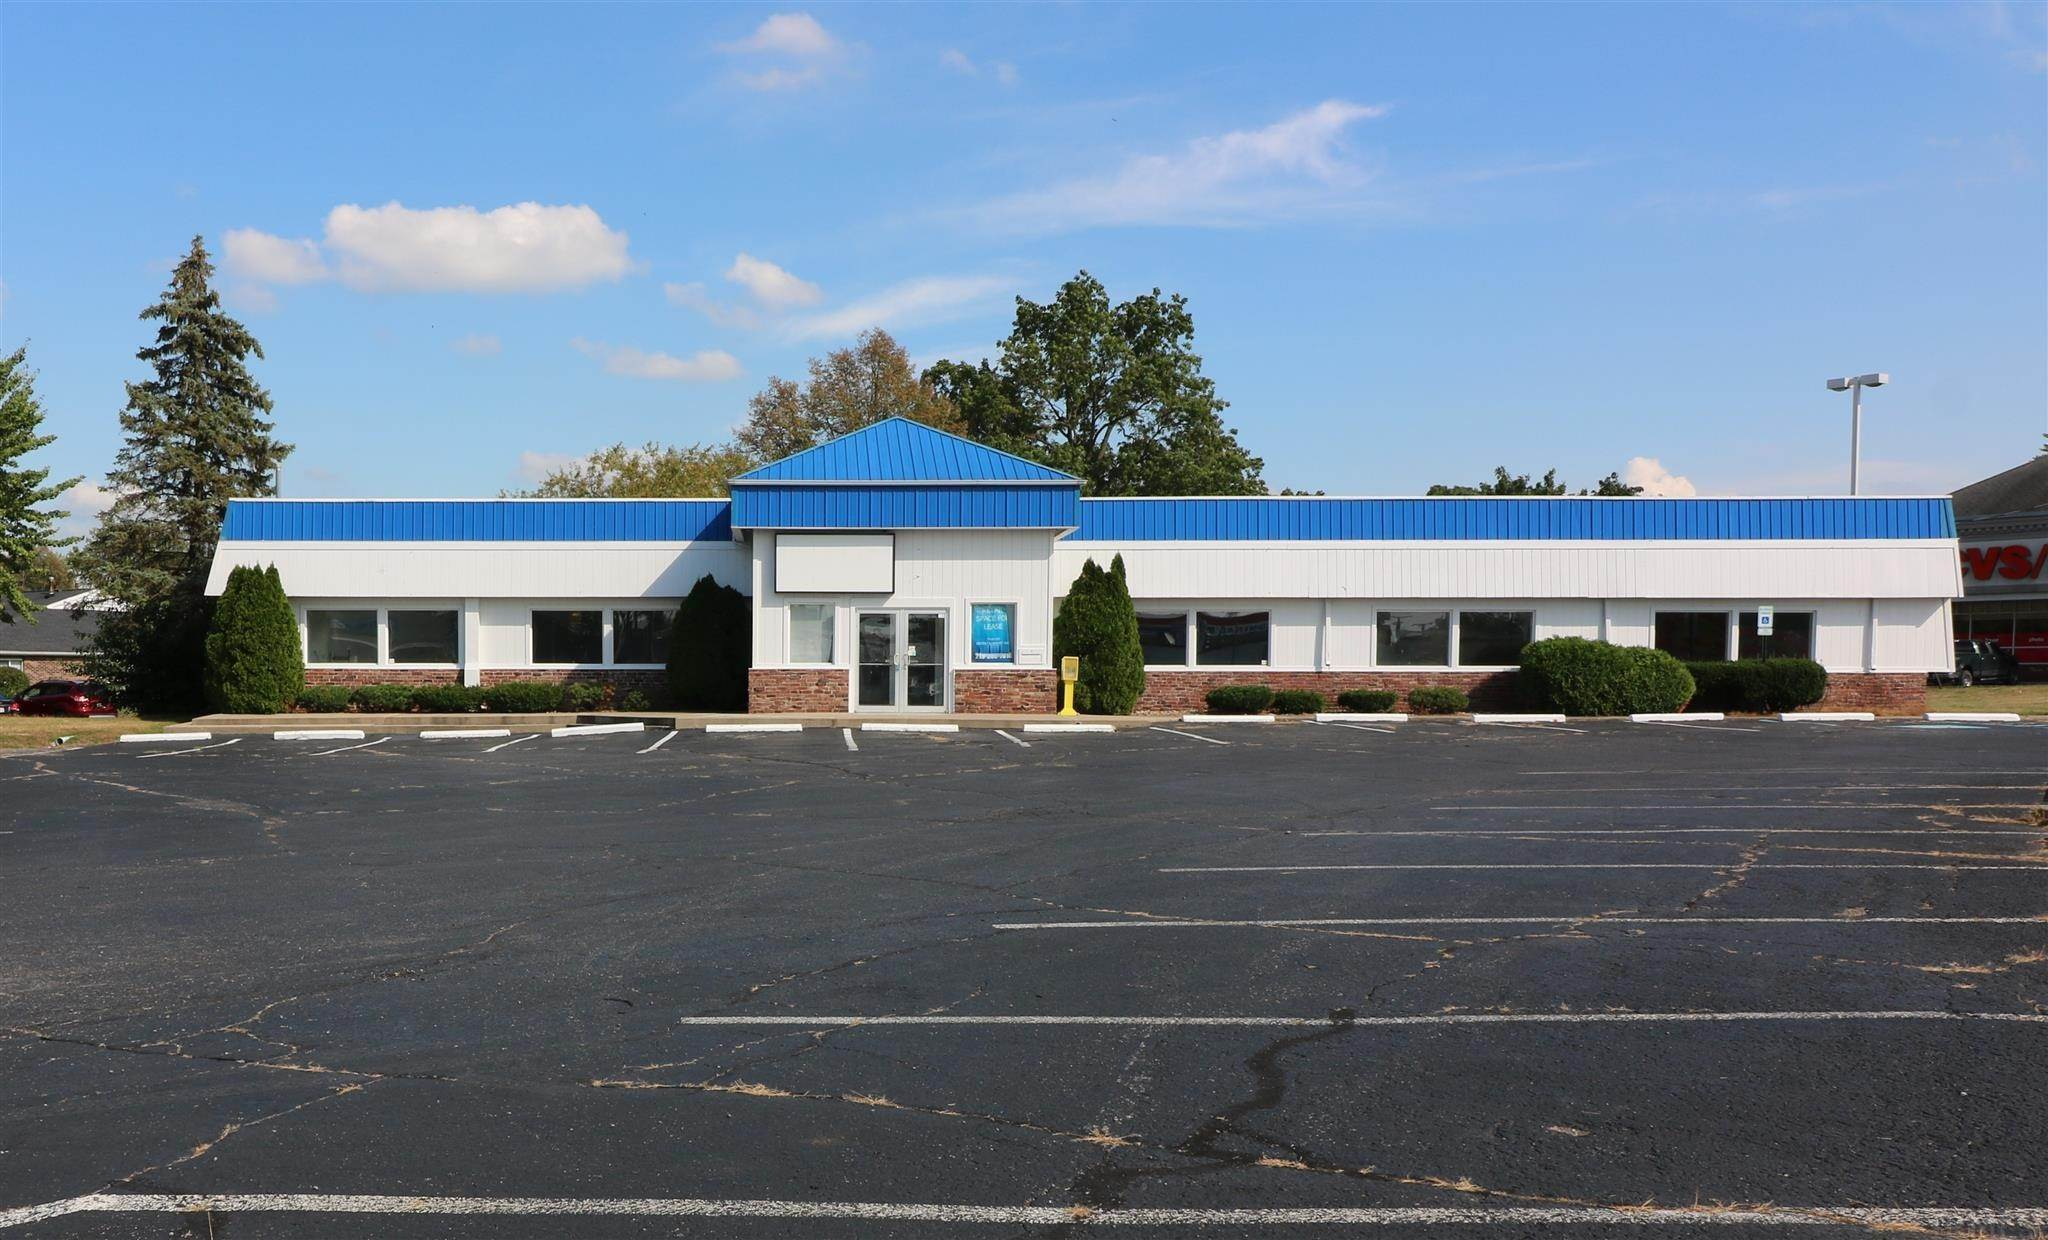 Comm / Ind Lease at 839 N Main Street Monticello, Indiana 47960 United States